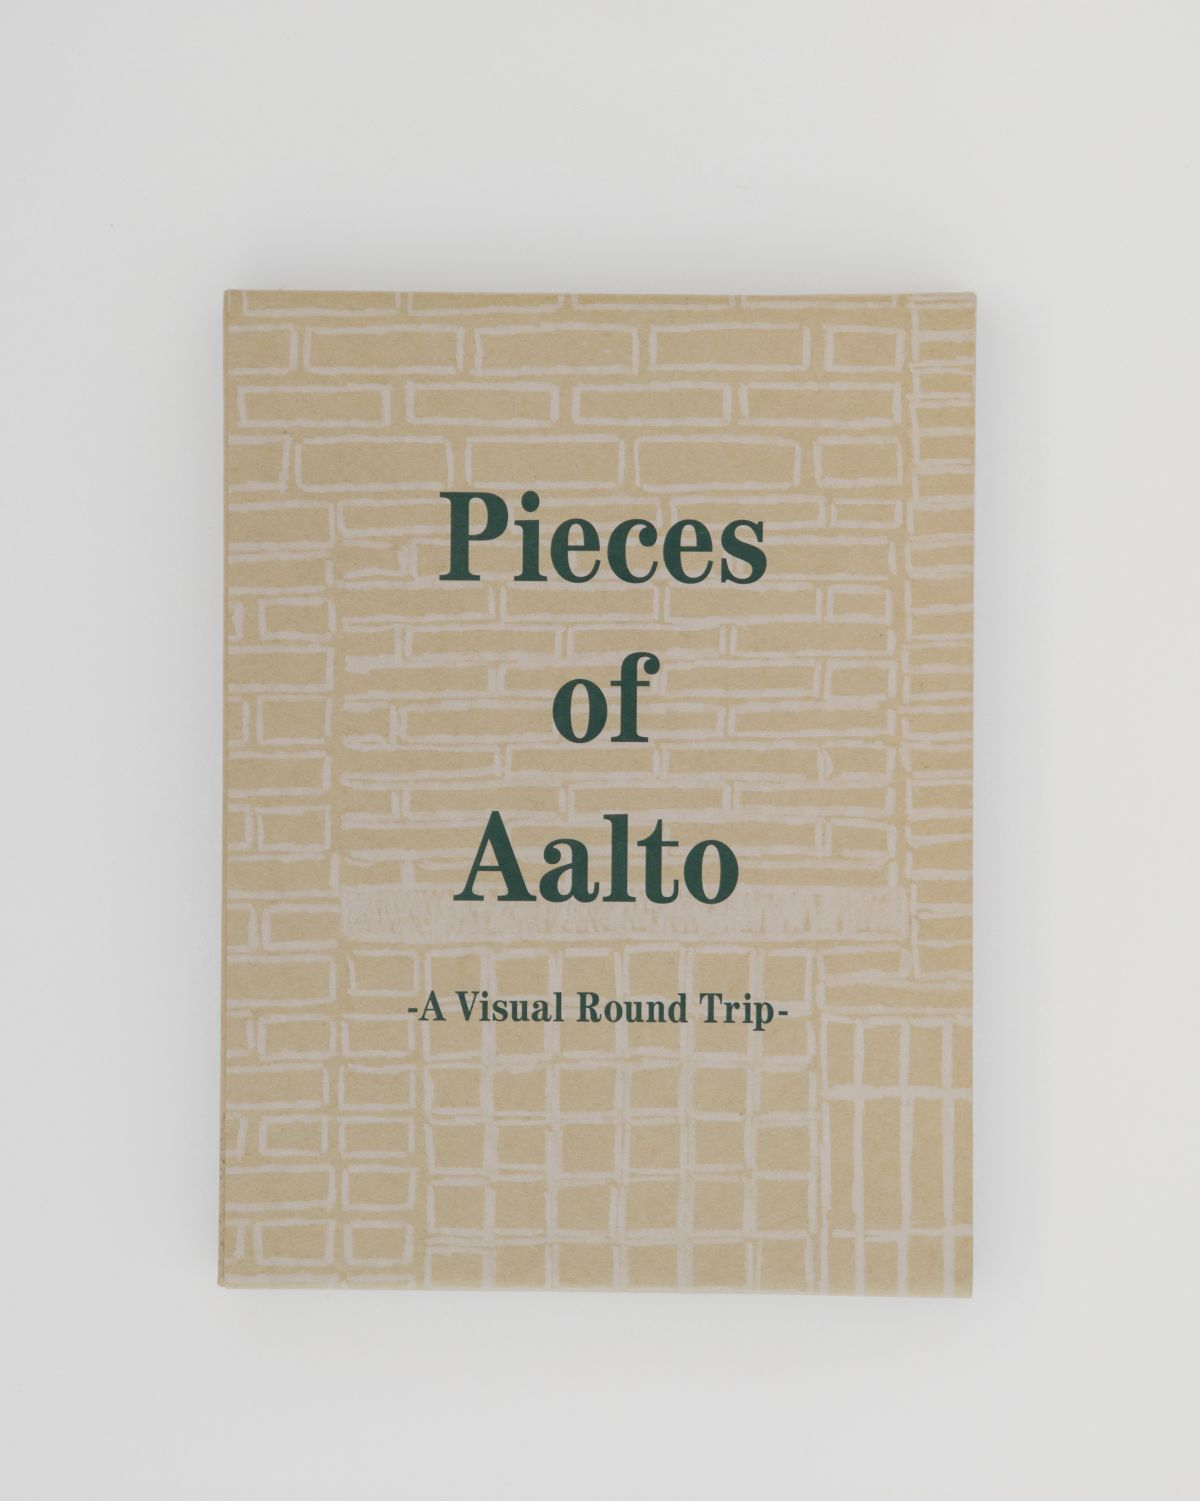 Pieces_of_Aalto_cover-2681862